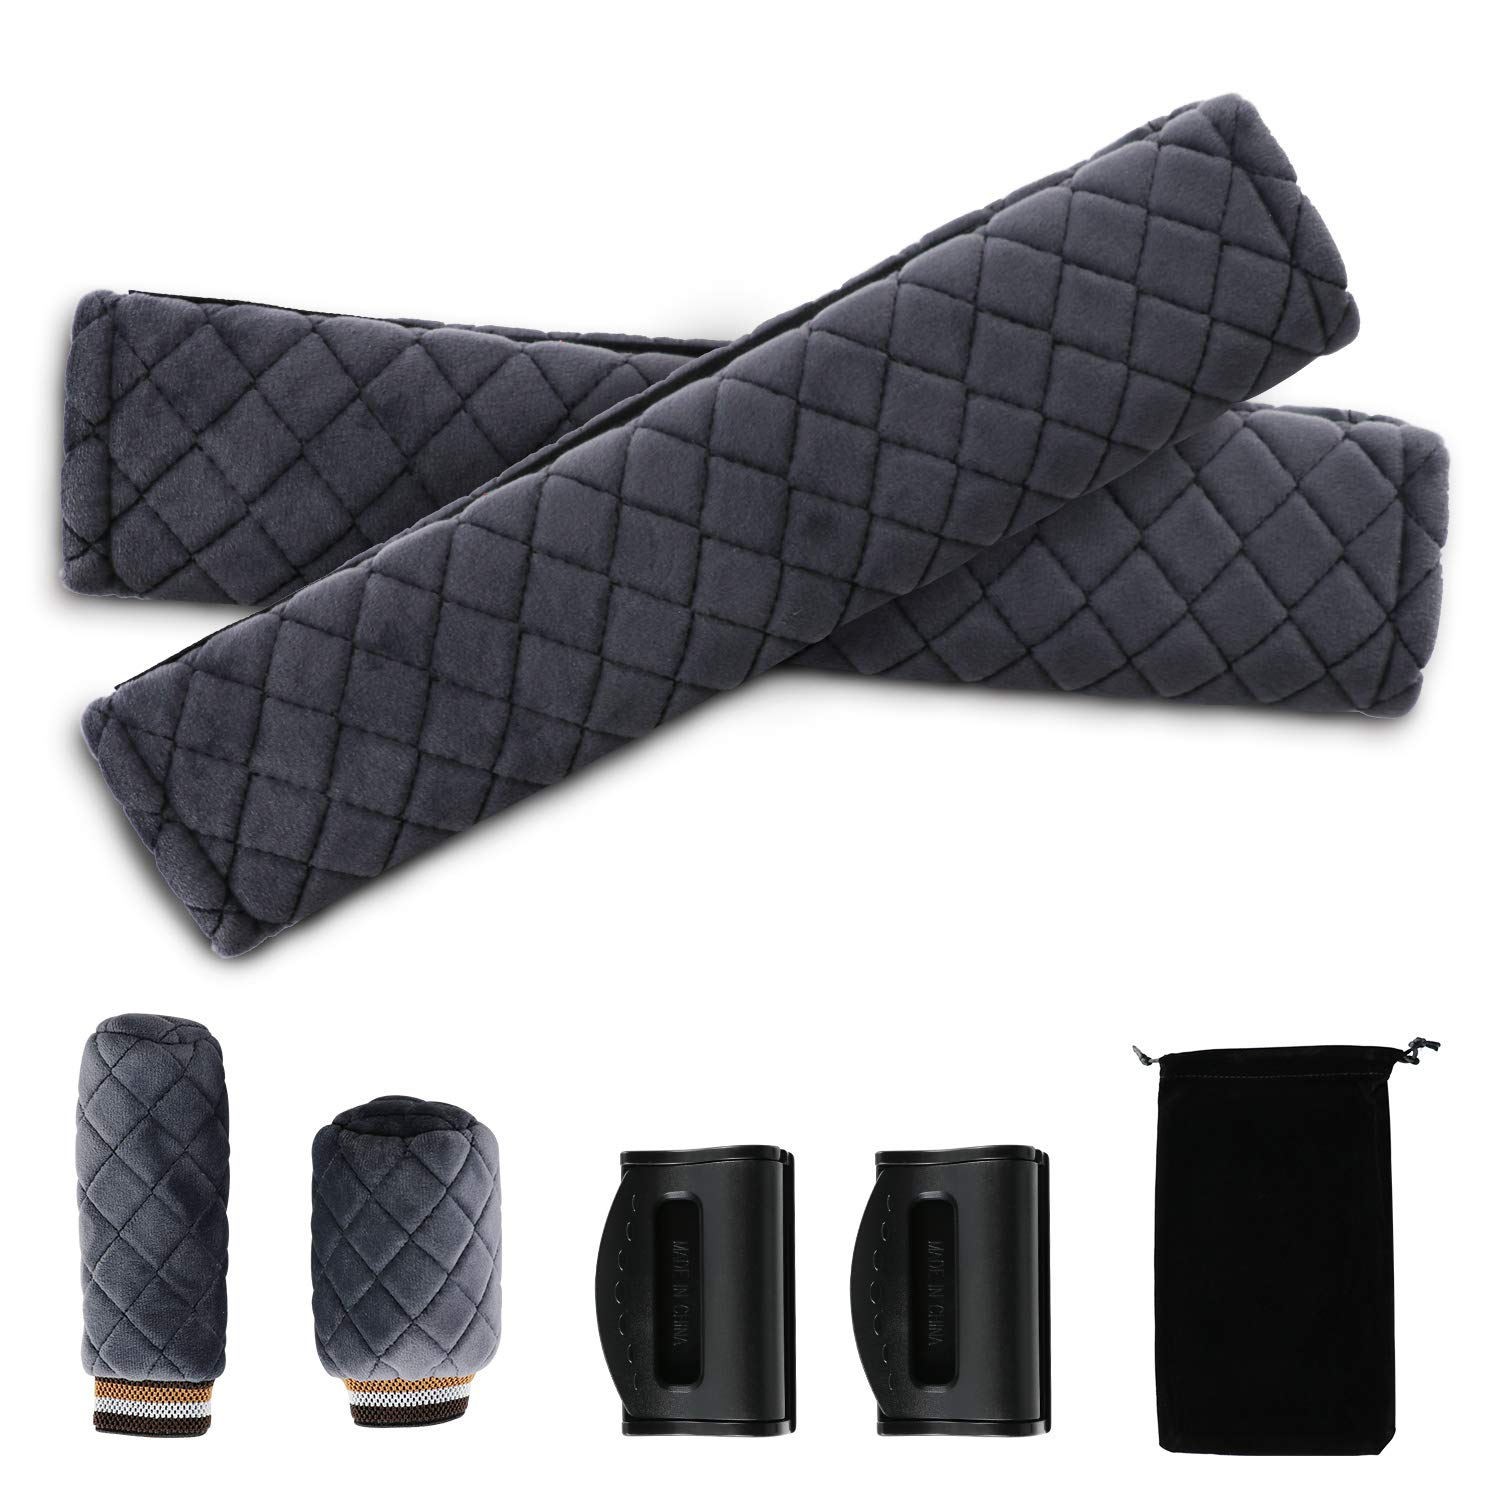 Seat Belt Pads, Feiboo Car Seat Belt Covers Kit with 2 Packs Shoulder Cover, Fixed Buckle and Anti-Slip Covers for Car Gear Shift and Handbrake